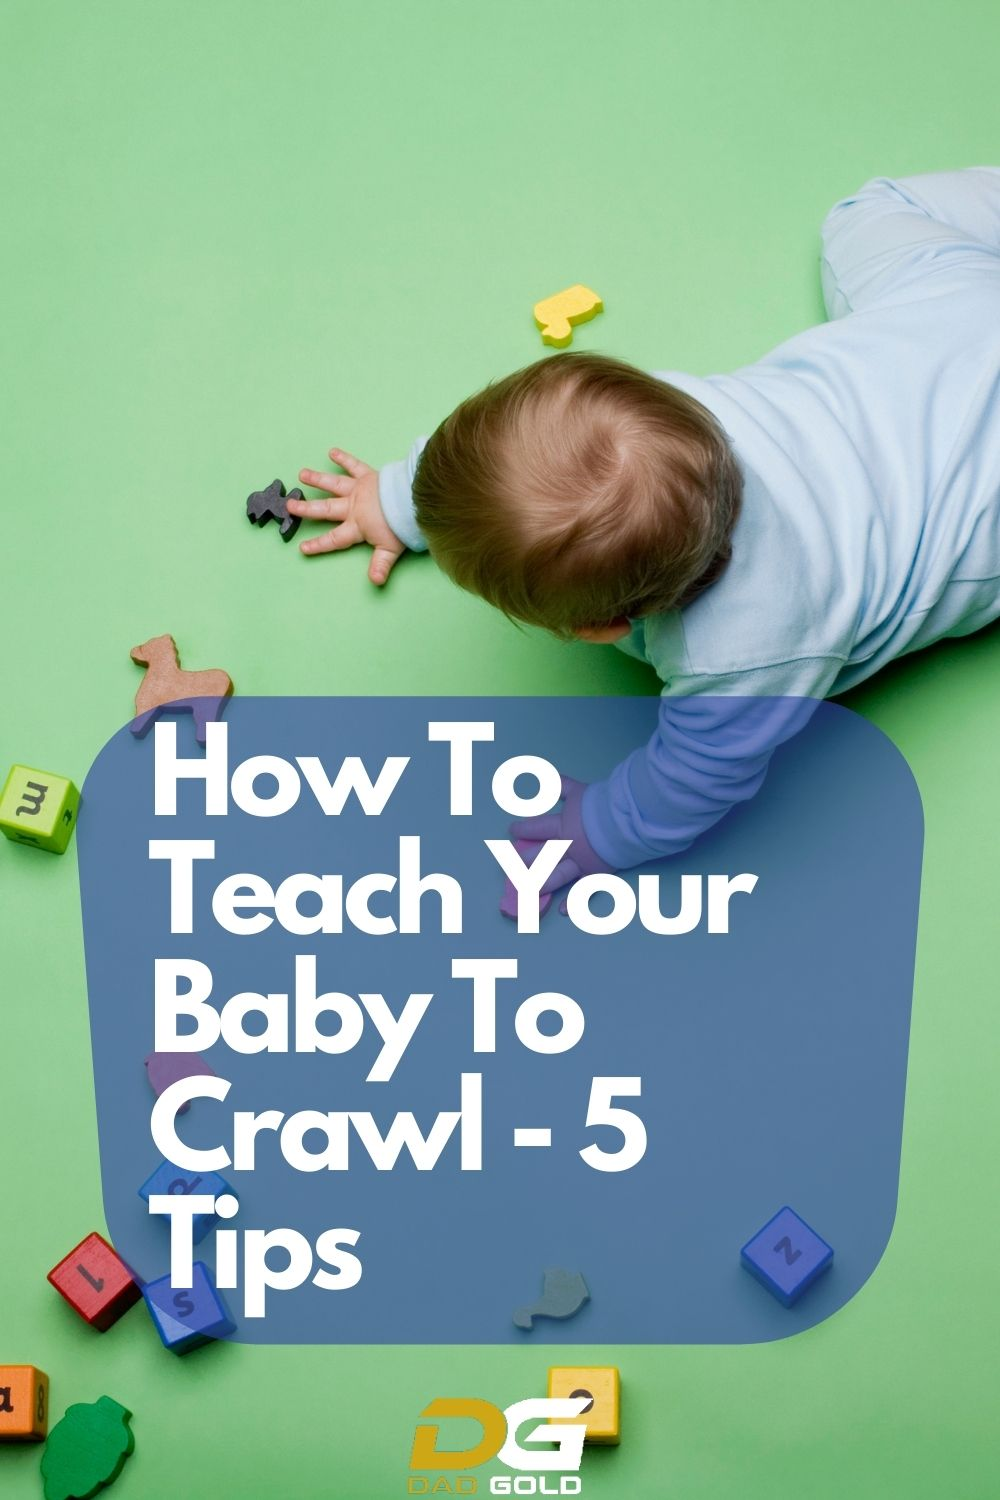 How To Teach Your Baby To Crawl - 5 Tips